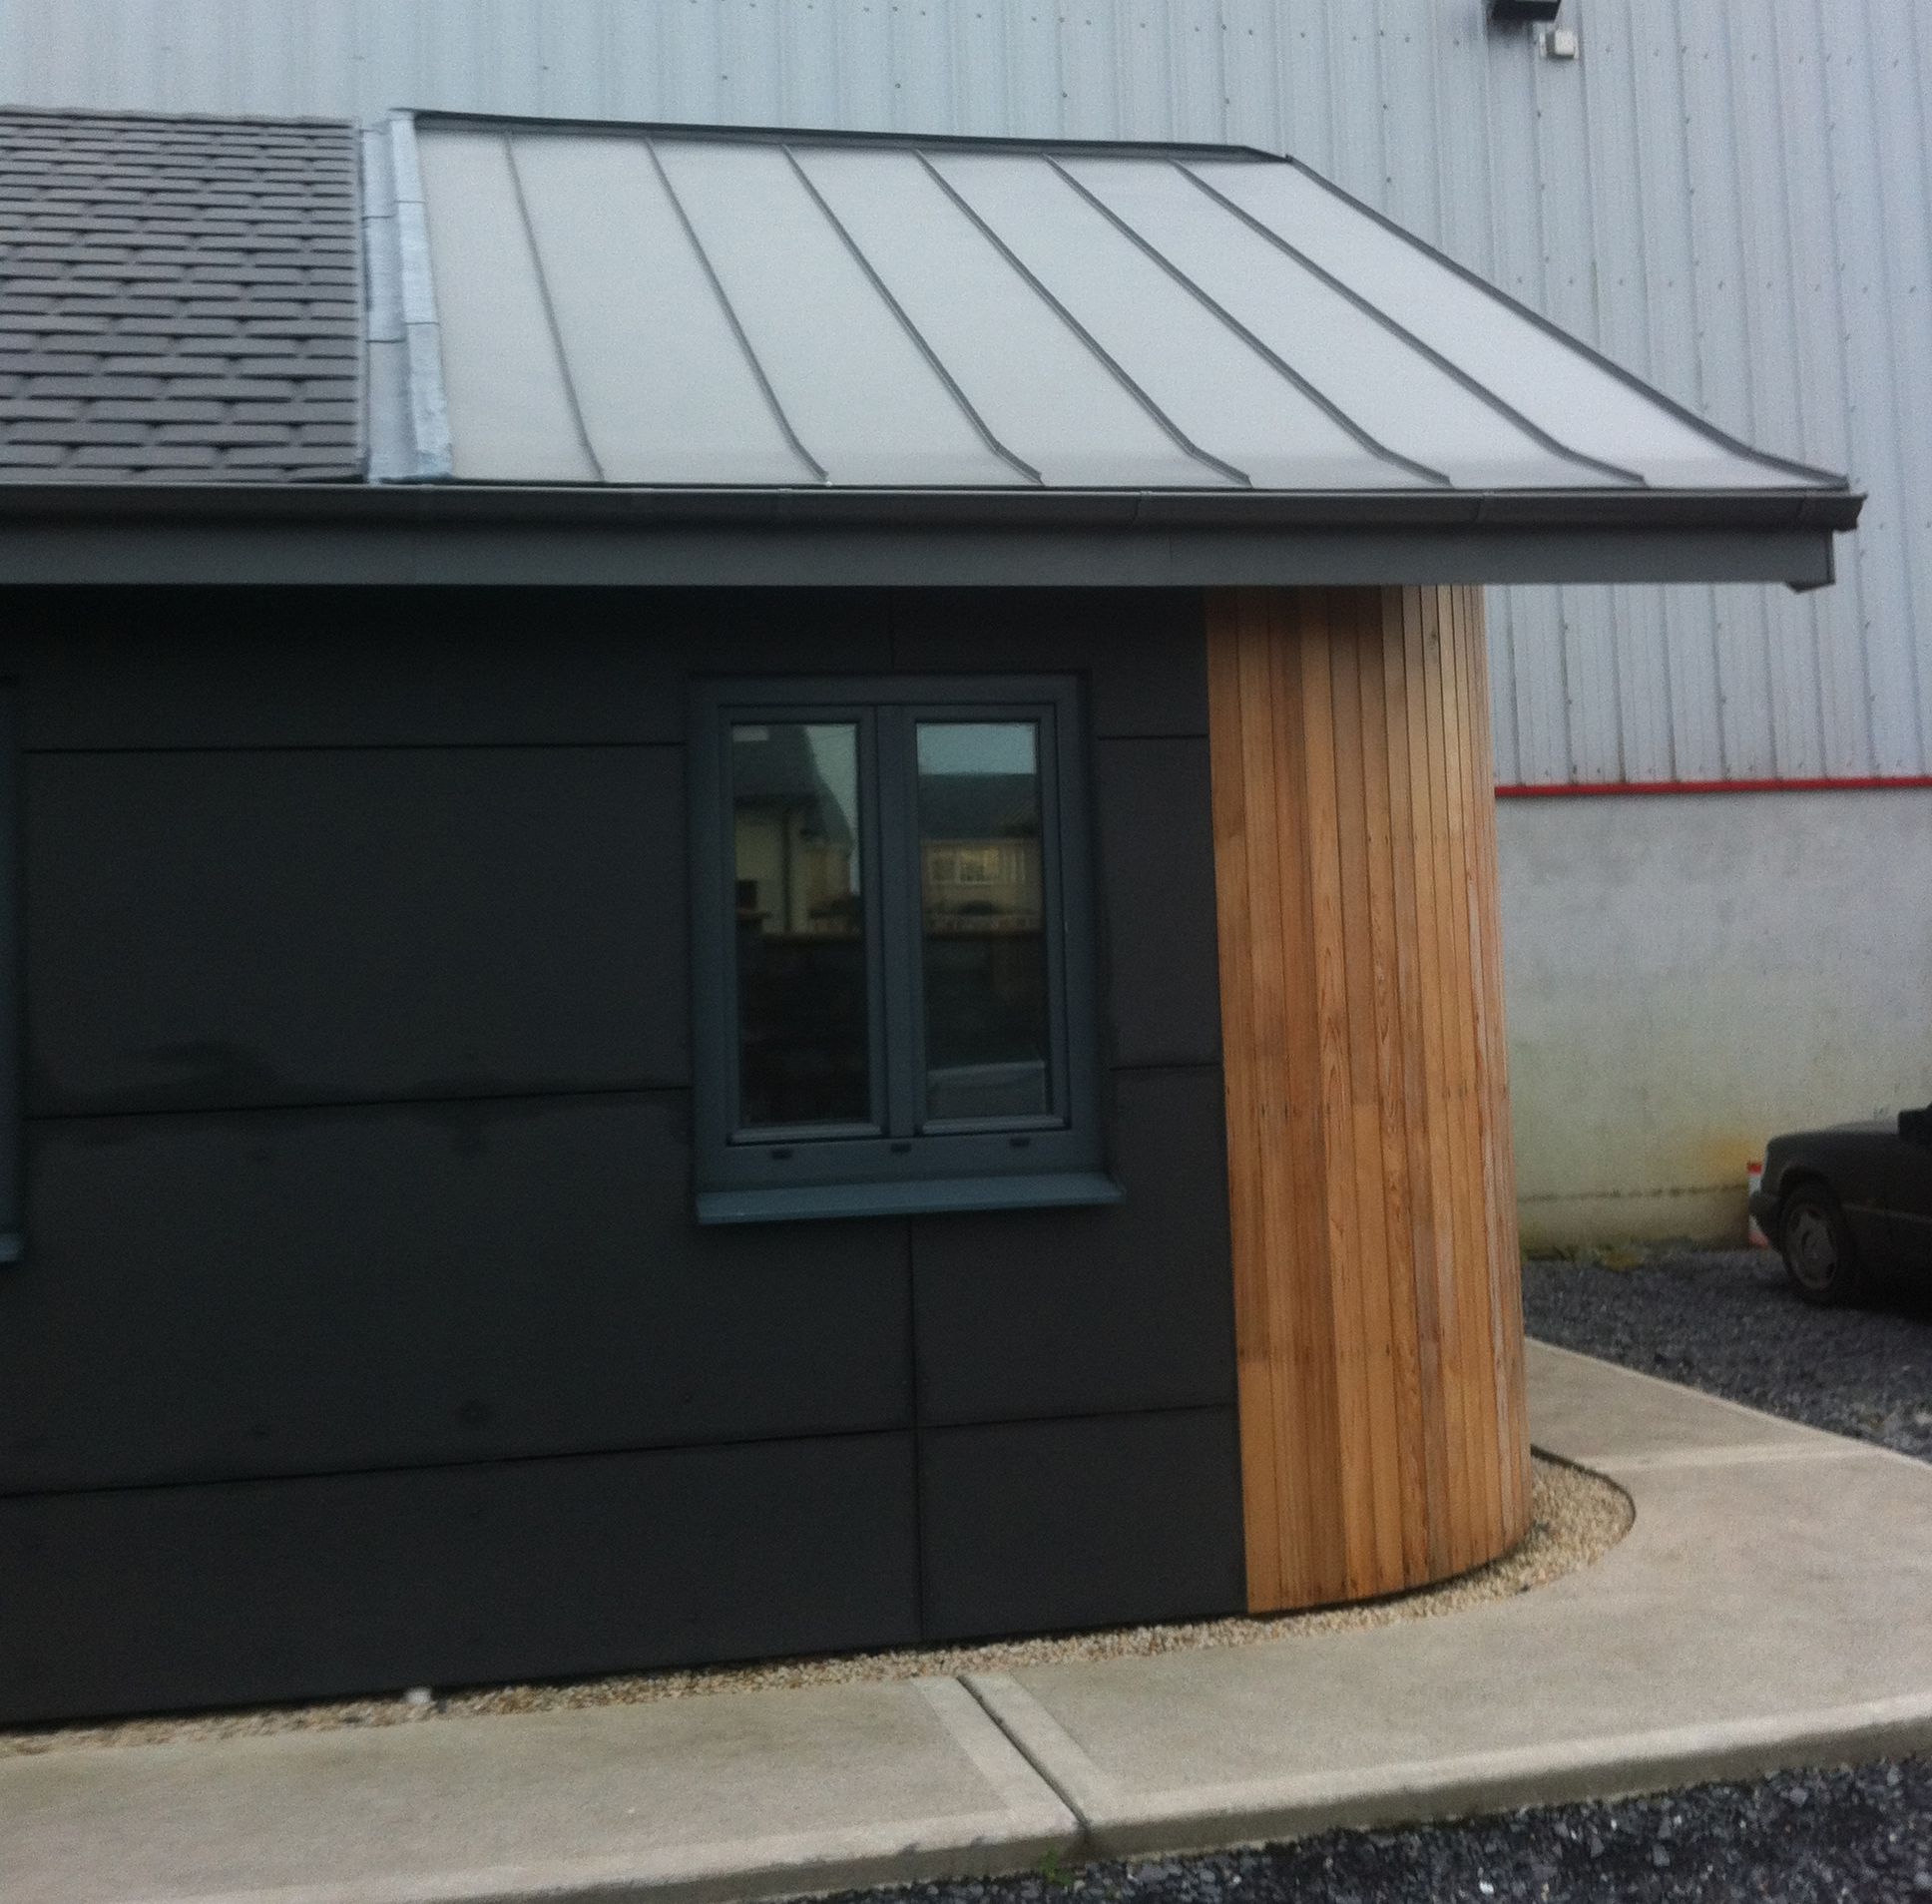 Newell Roofing Products Ireland Dark Silver Ral 9007 Roof